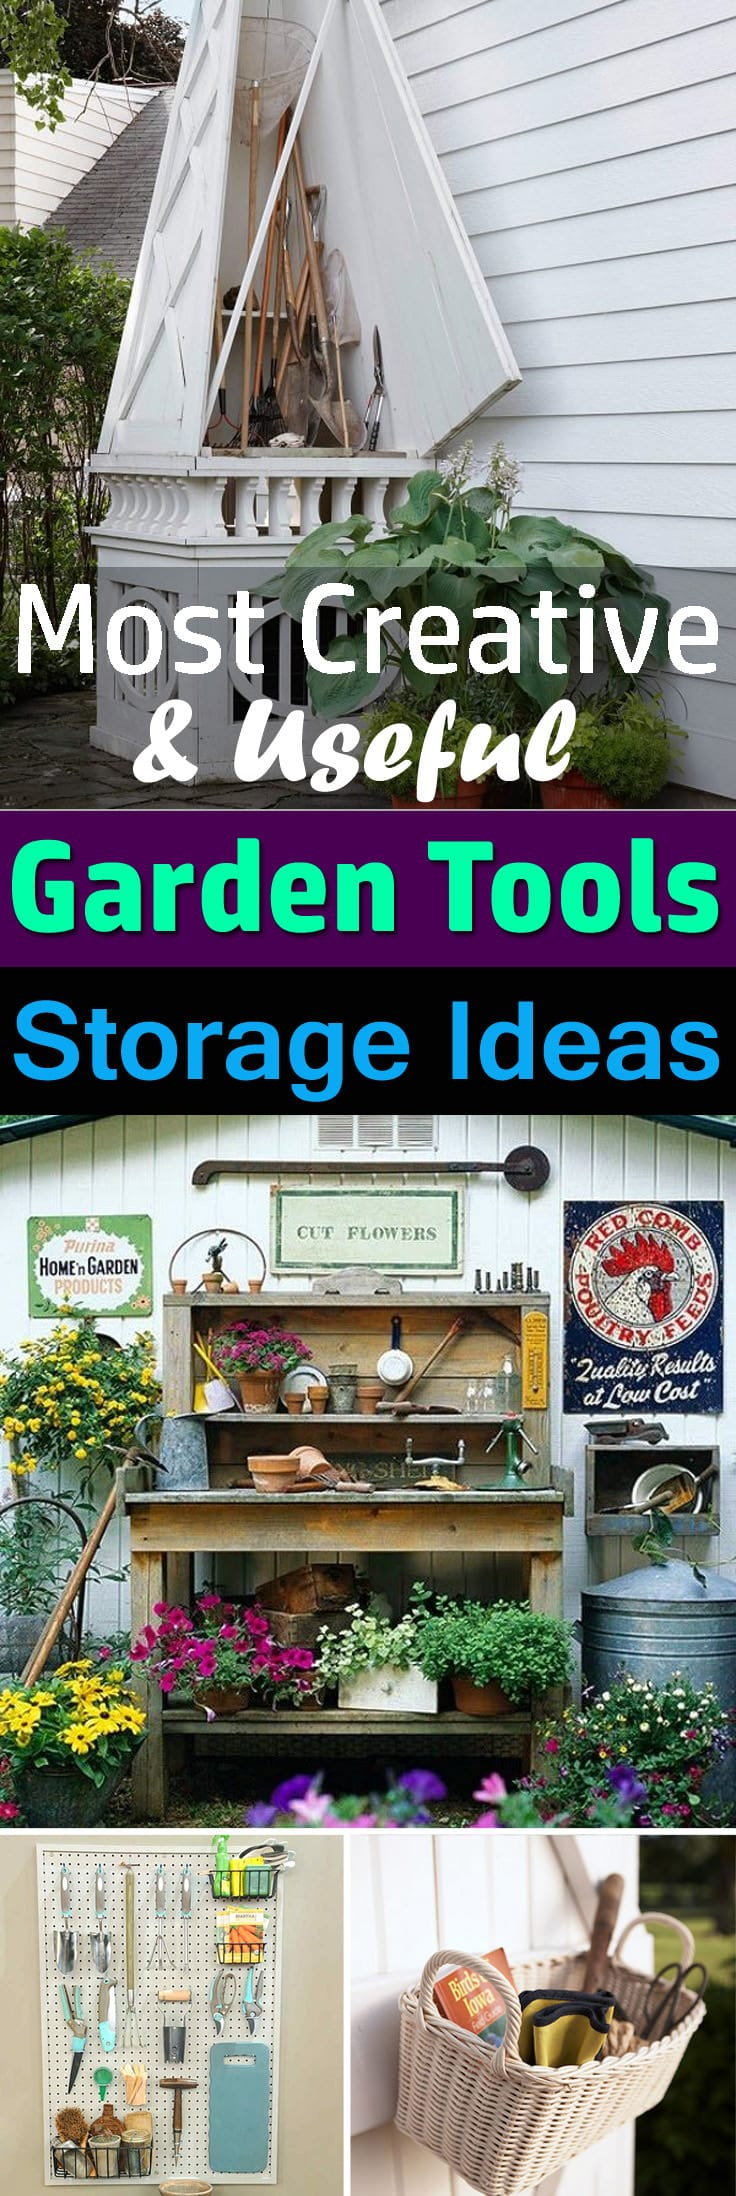 Save Your Time And Money Stop Finding The Gardening Tools You Misplace By Trying One